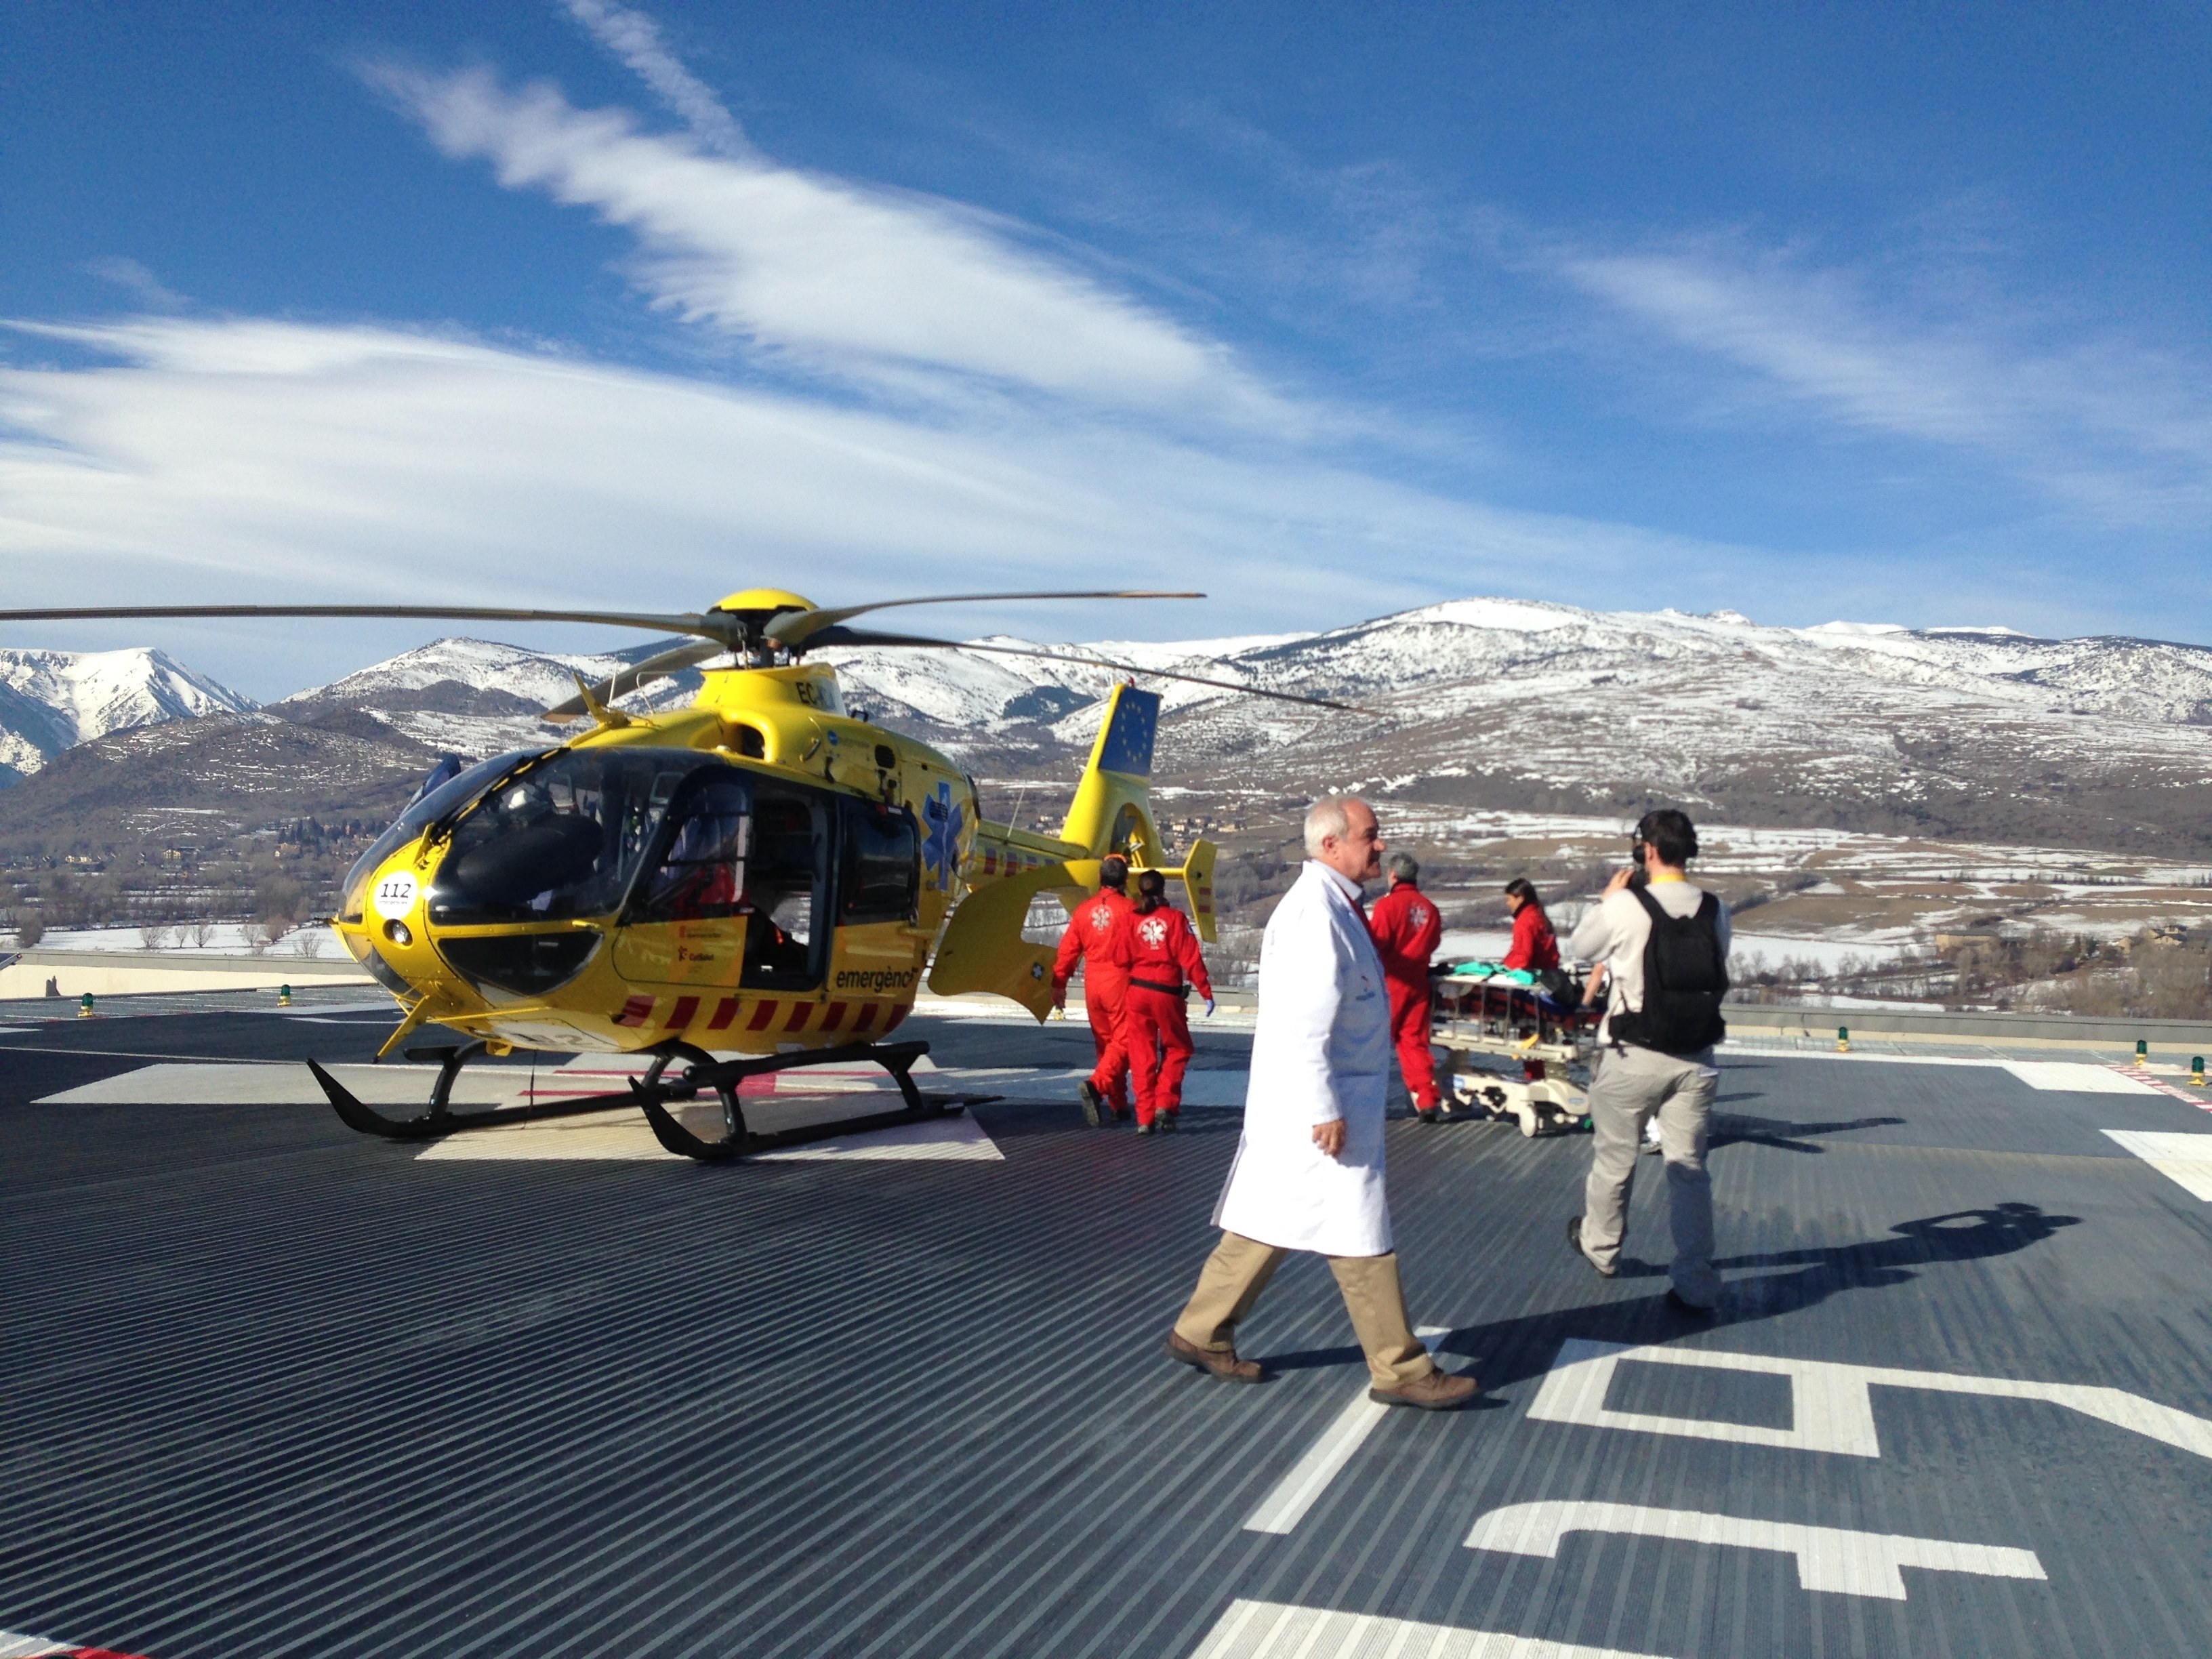 A patient is airlifted from Cerdanya hospital. © AECT-HC